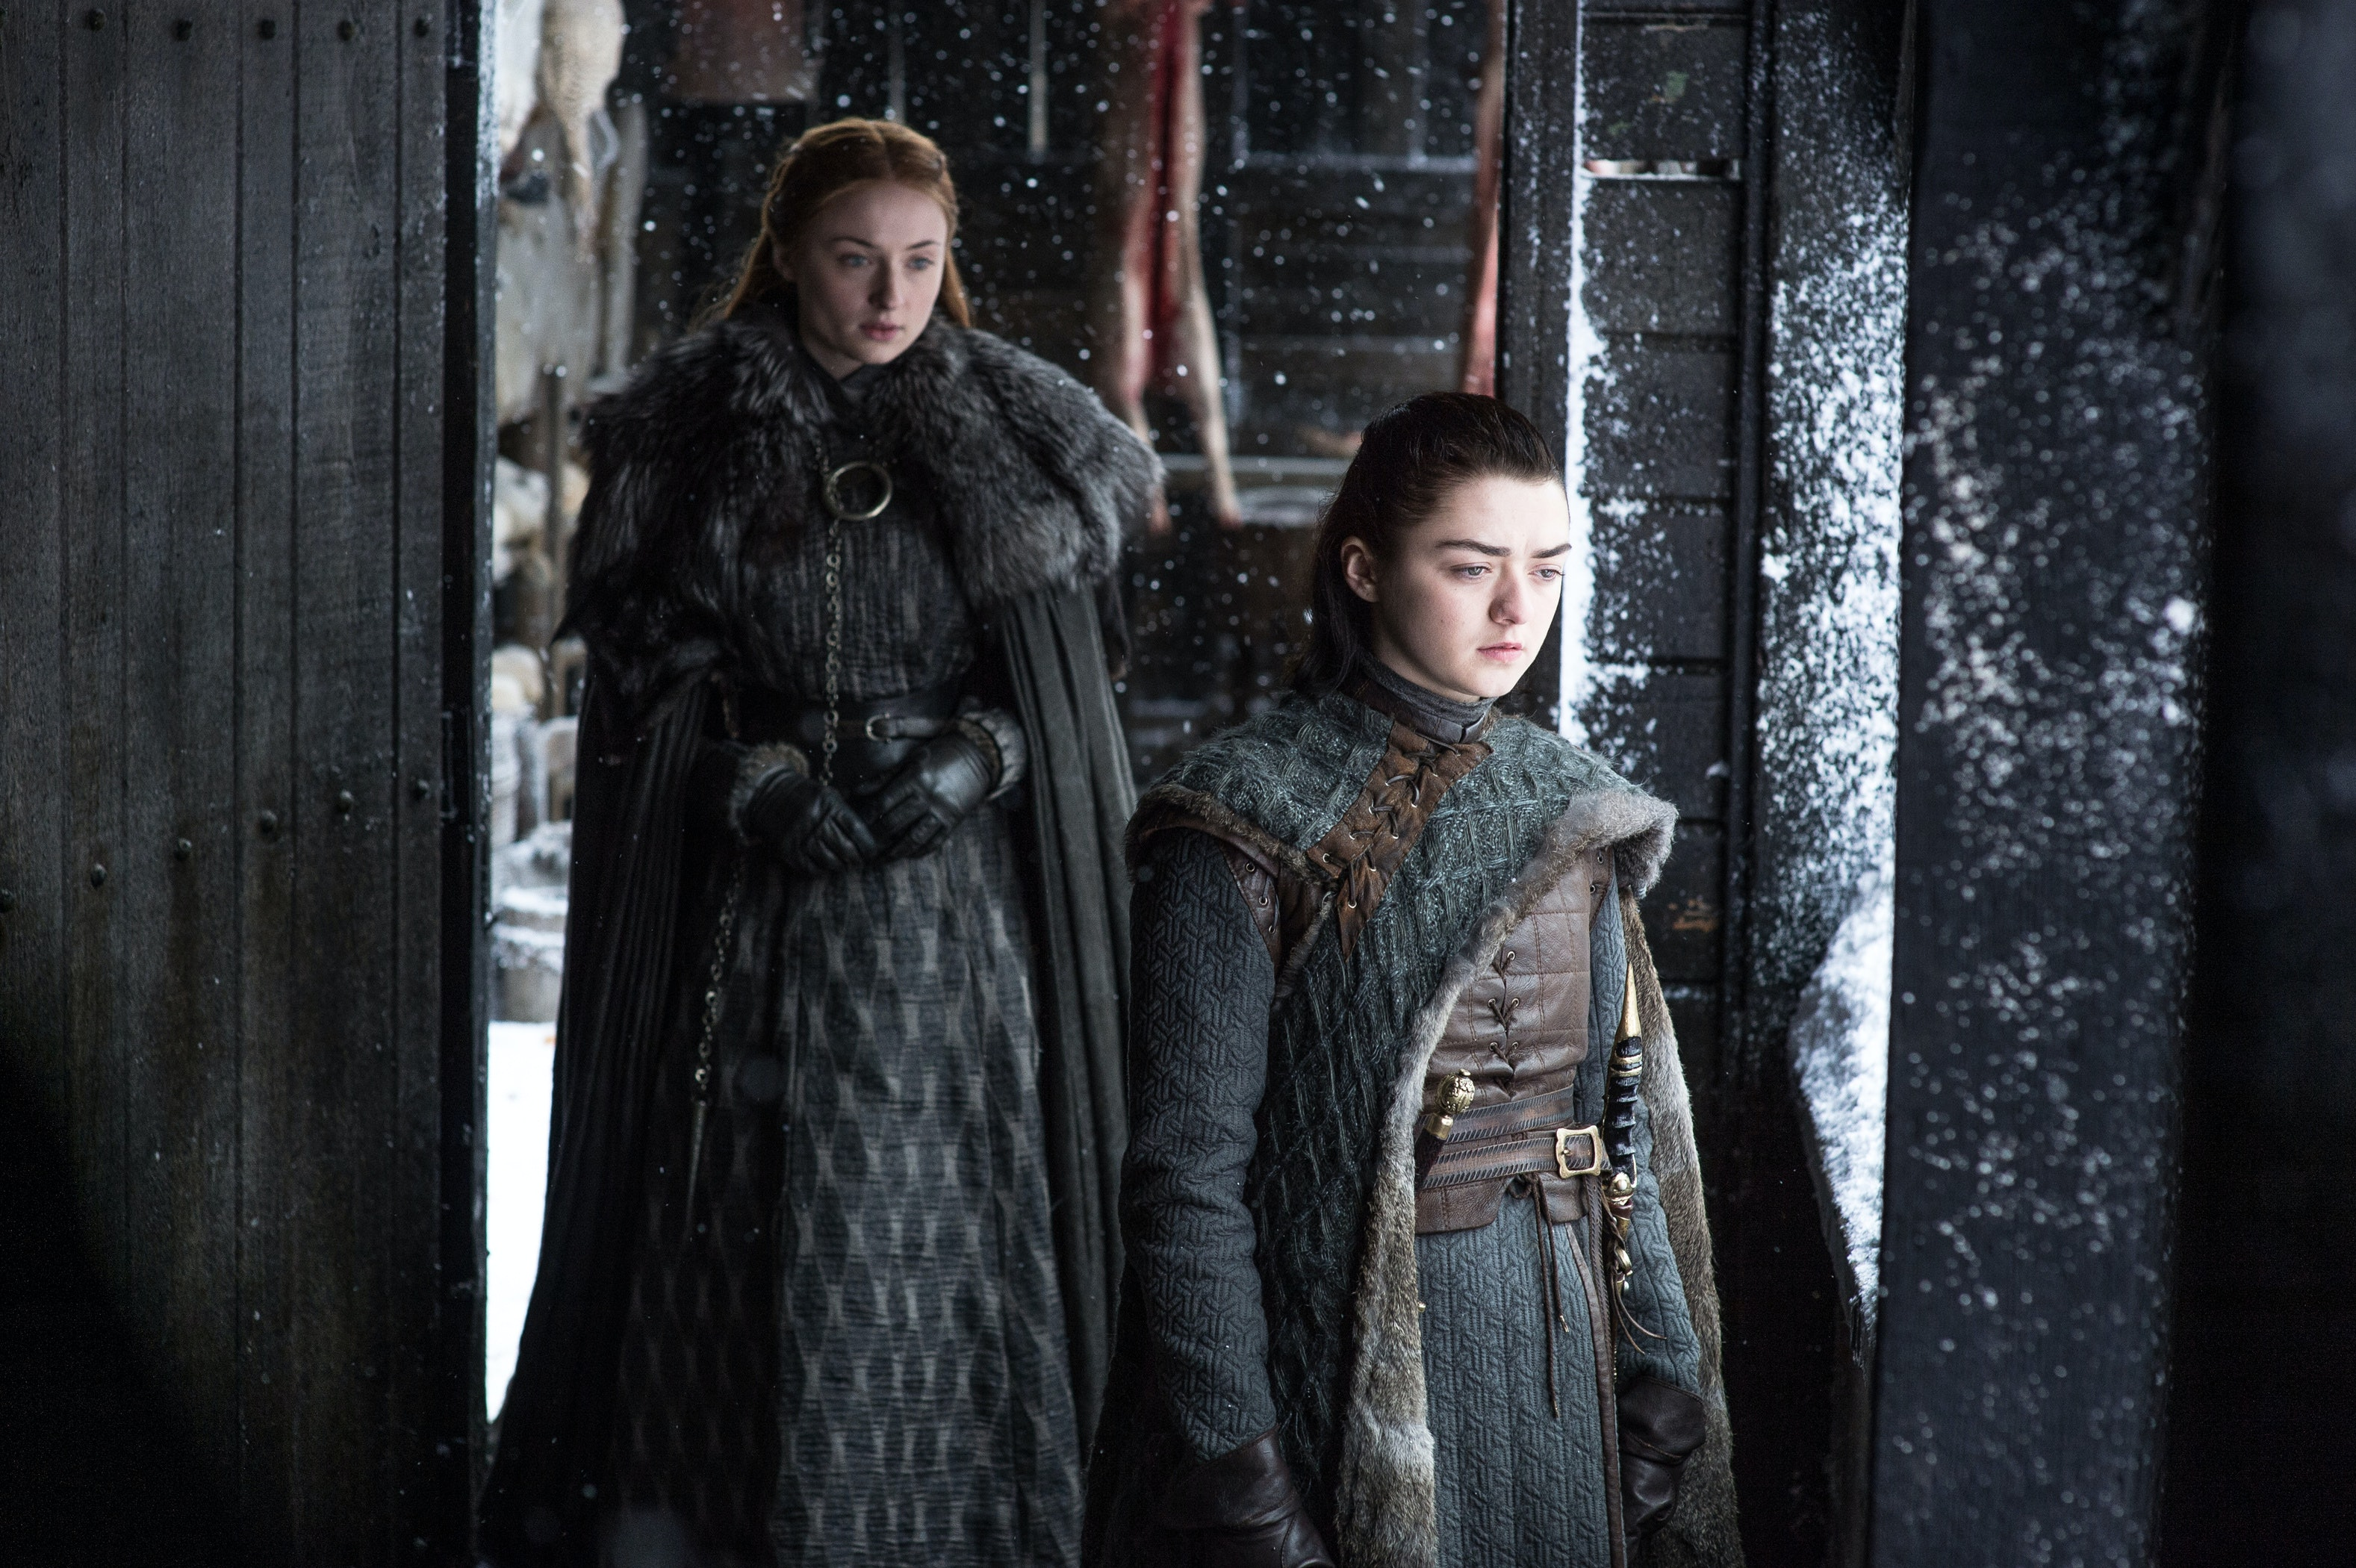 How Old Are The 'Game Of Thrones' Characters In The Books? Some Of